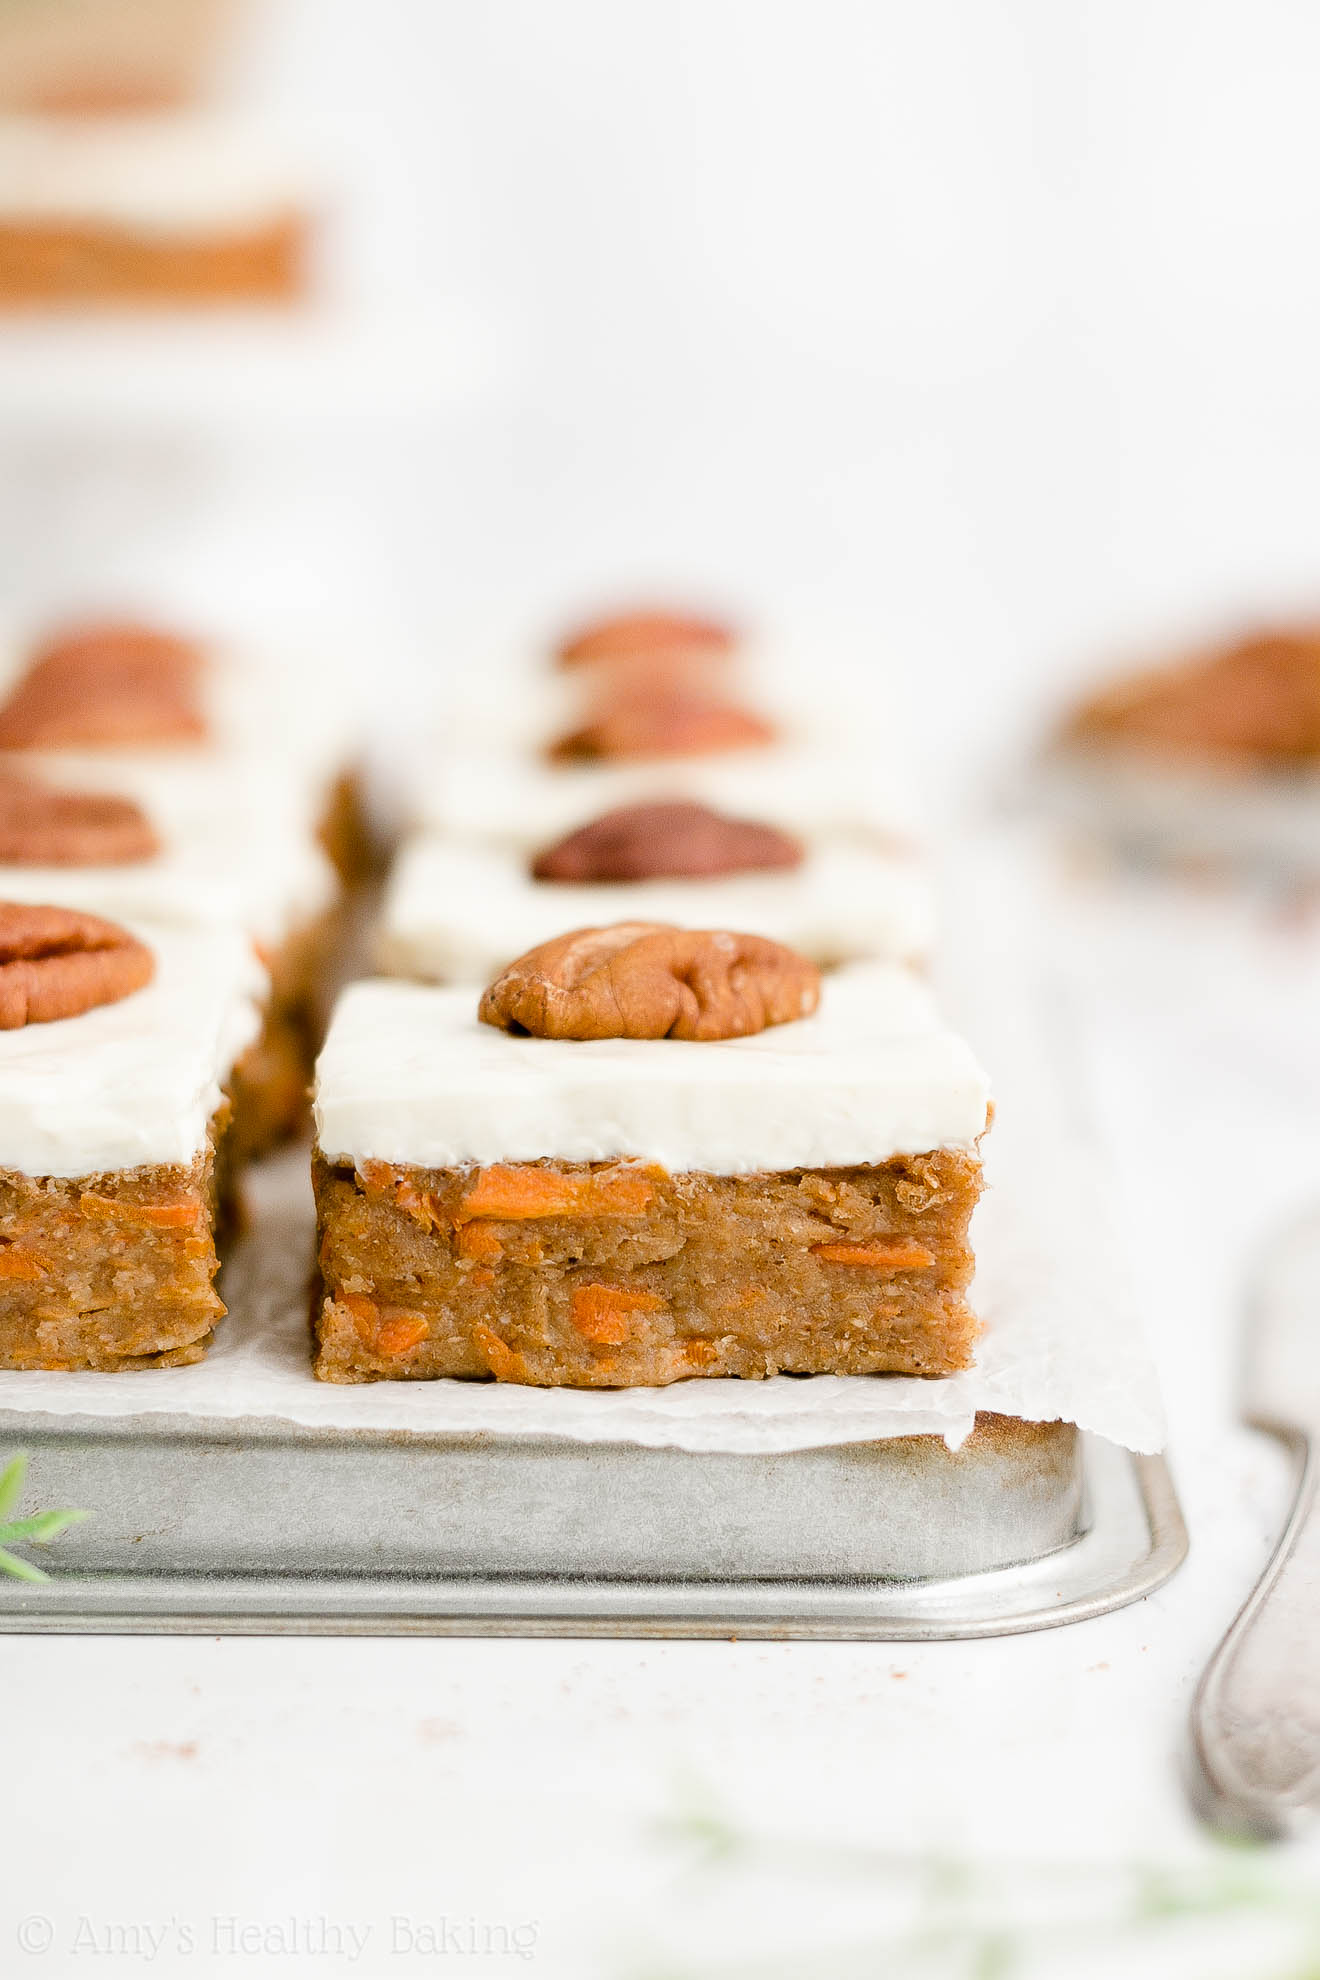 Healthy Low Calorie Sugar Free Carrot Cake Bars with Cream Cheese Frosting